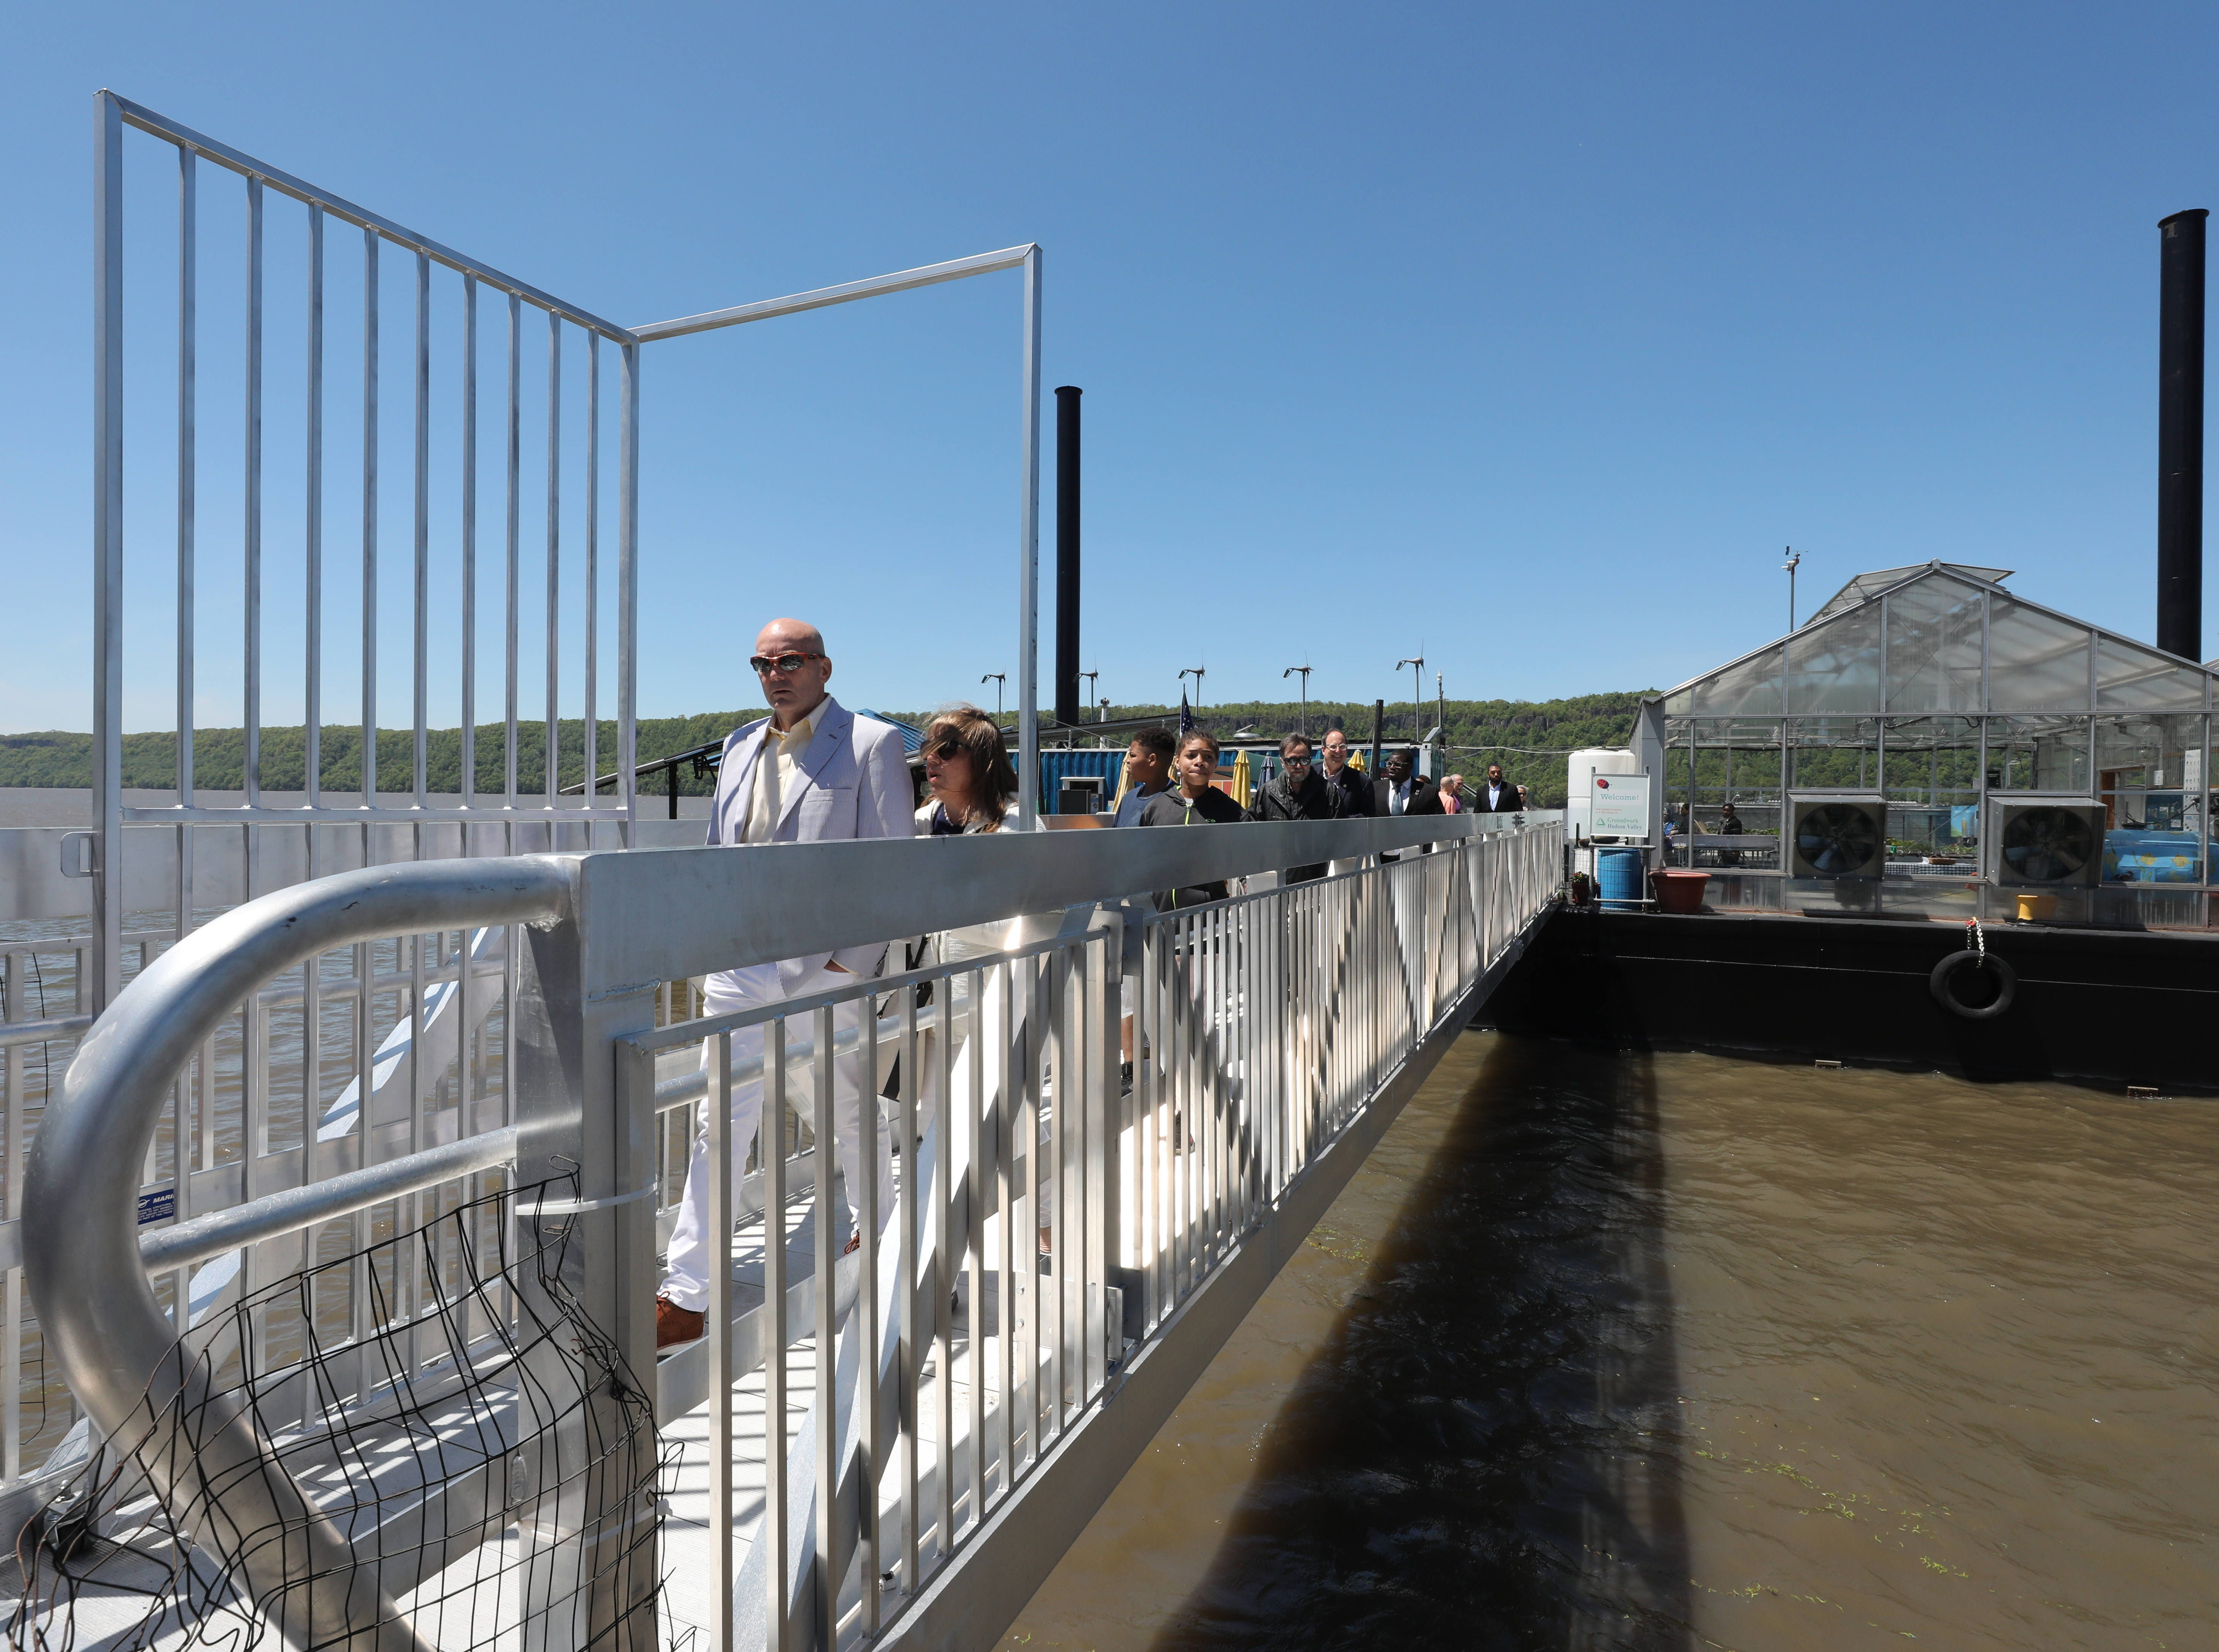 People walk along the brand new gangway and gate as the Science Barge enjoys its 11th annual opening on the Hudson River in Yonkers, May 11, 2019. The floating environmental education center  has undergone an almost $1million enhancement, completed over the past two years.